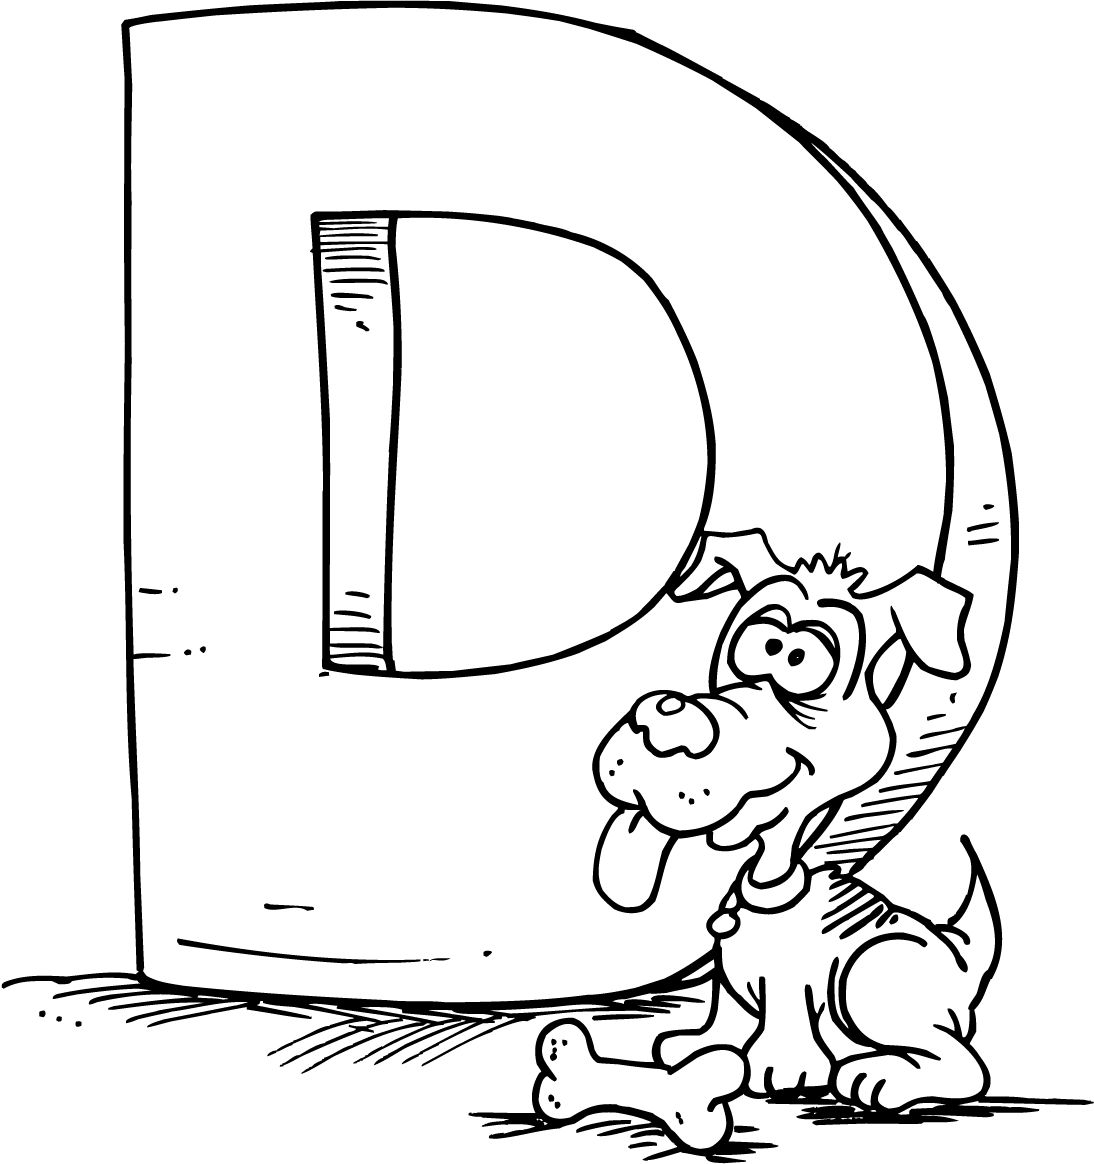 Coloring pages for letter m - Letter D Coloring Pages 01